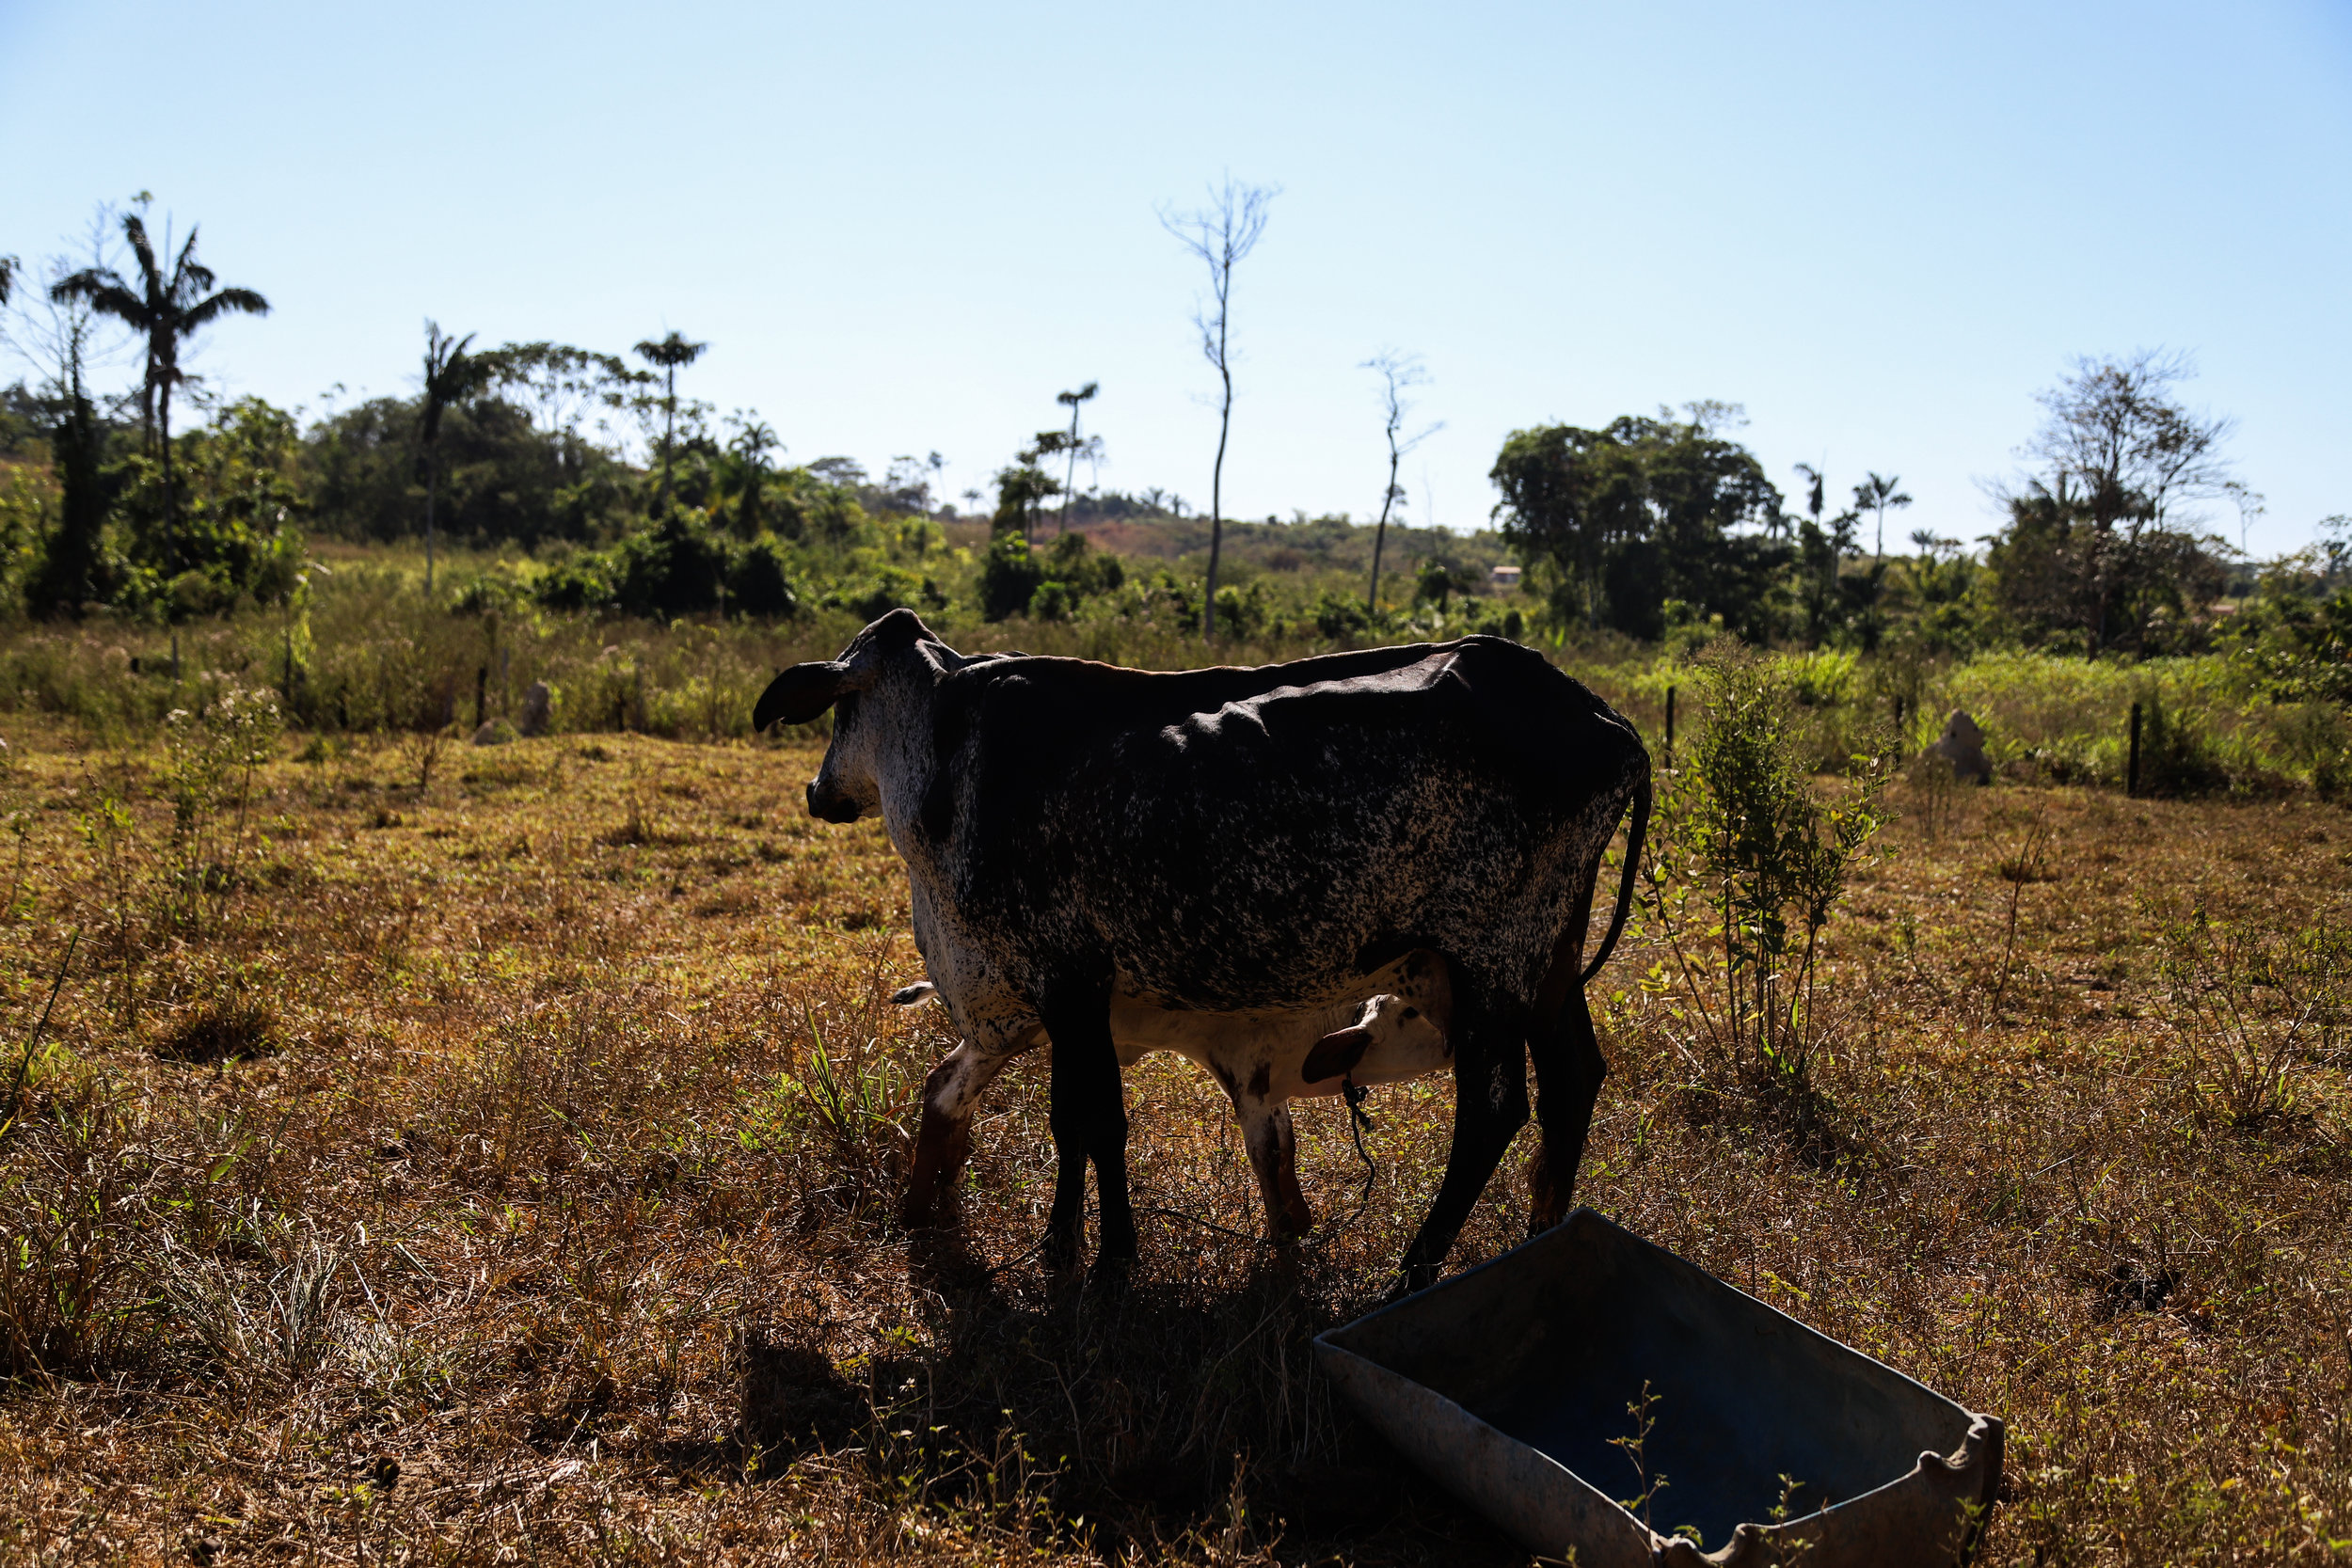 A dairy cow in a grazed pasture in the municipality of Apiacás. Dairy farming is one of the most common activities practiced by family farmers in northern Mato Grosso, many of whom migrated north from southern states.